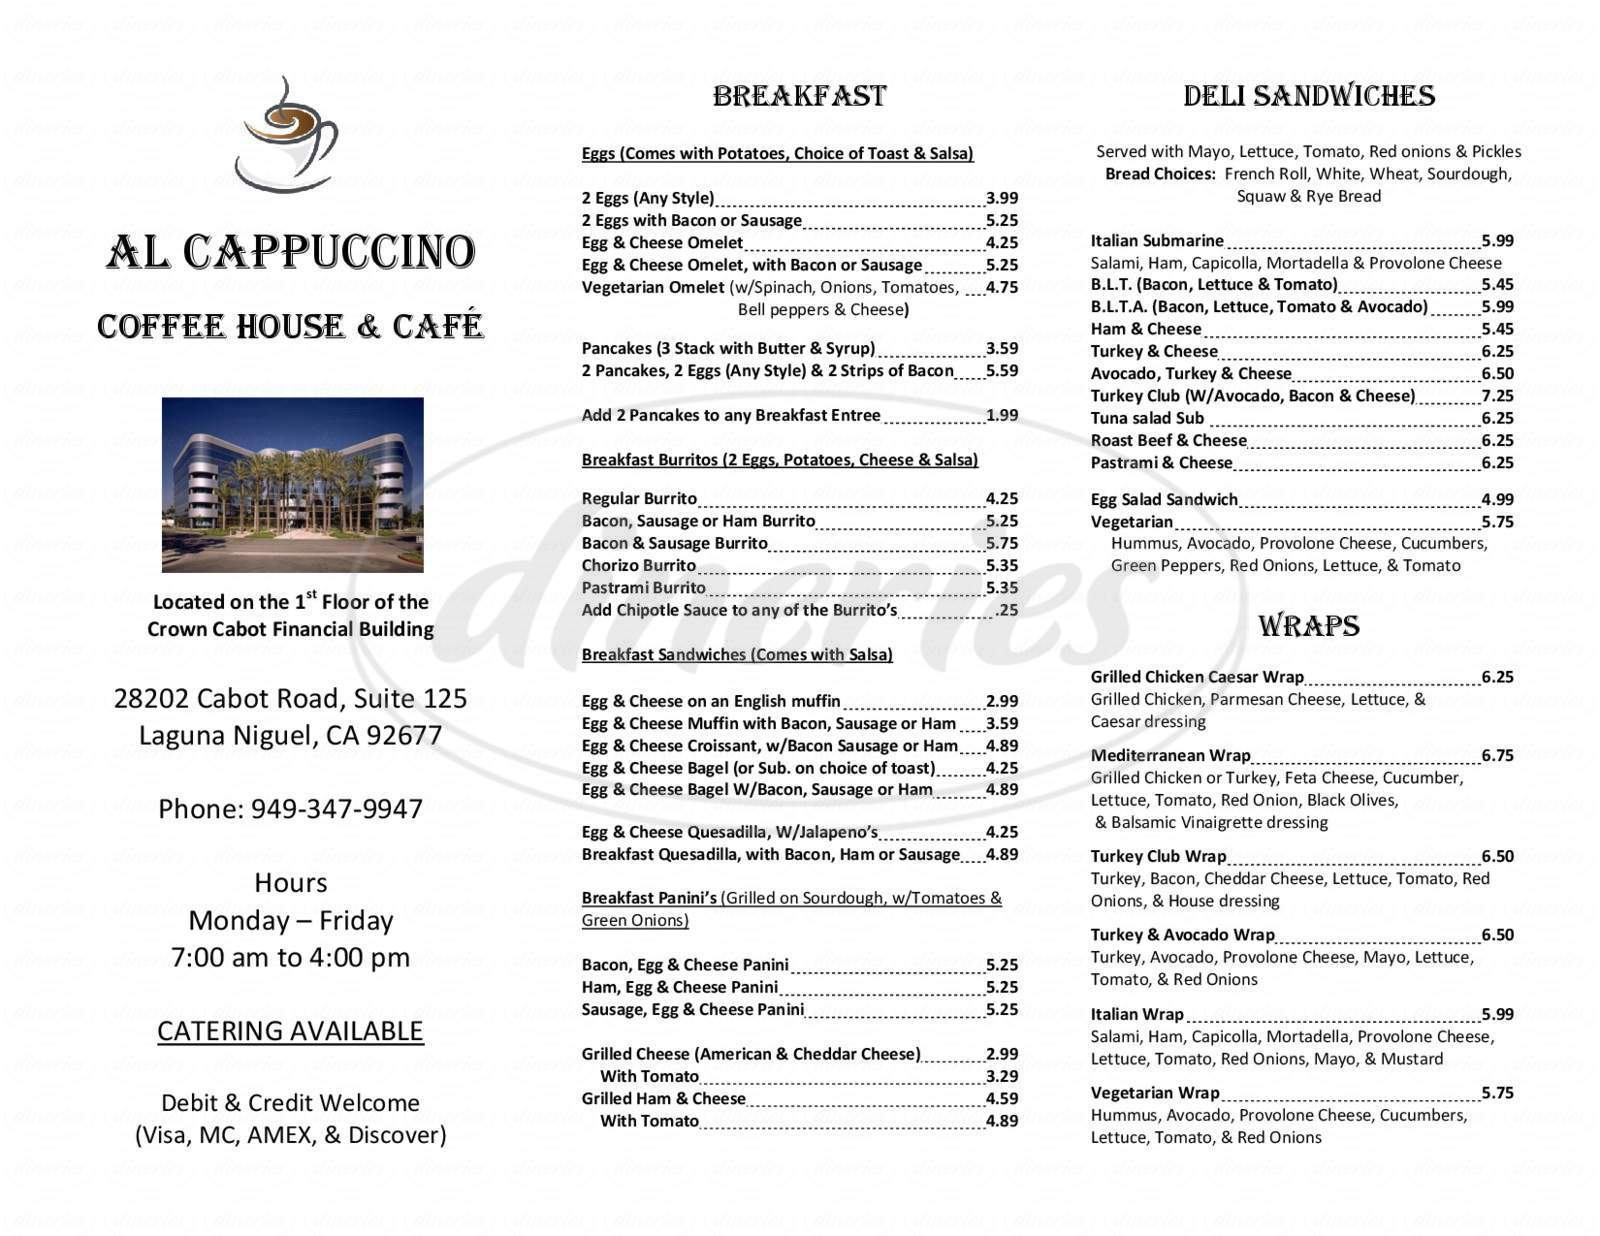 menu for Al-Cappuccino Coffee House